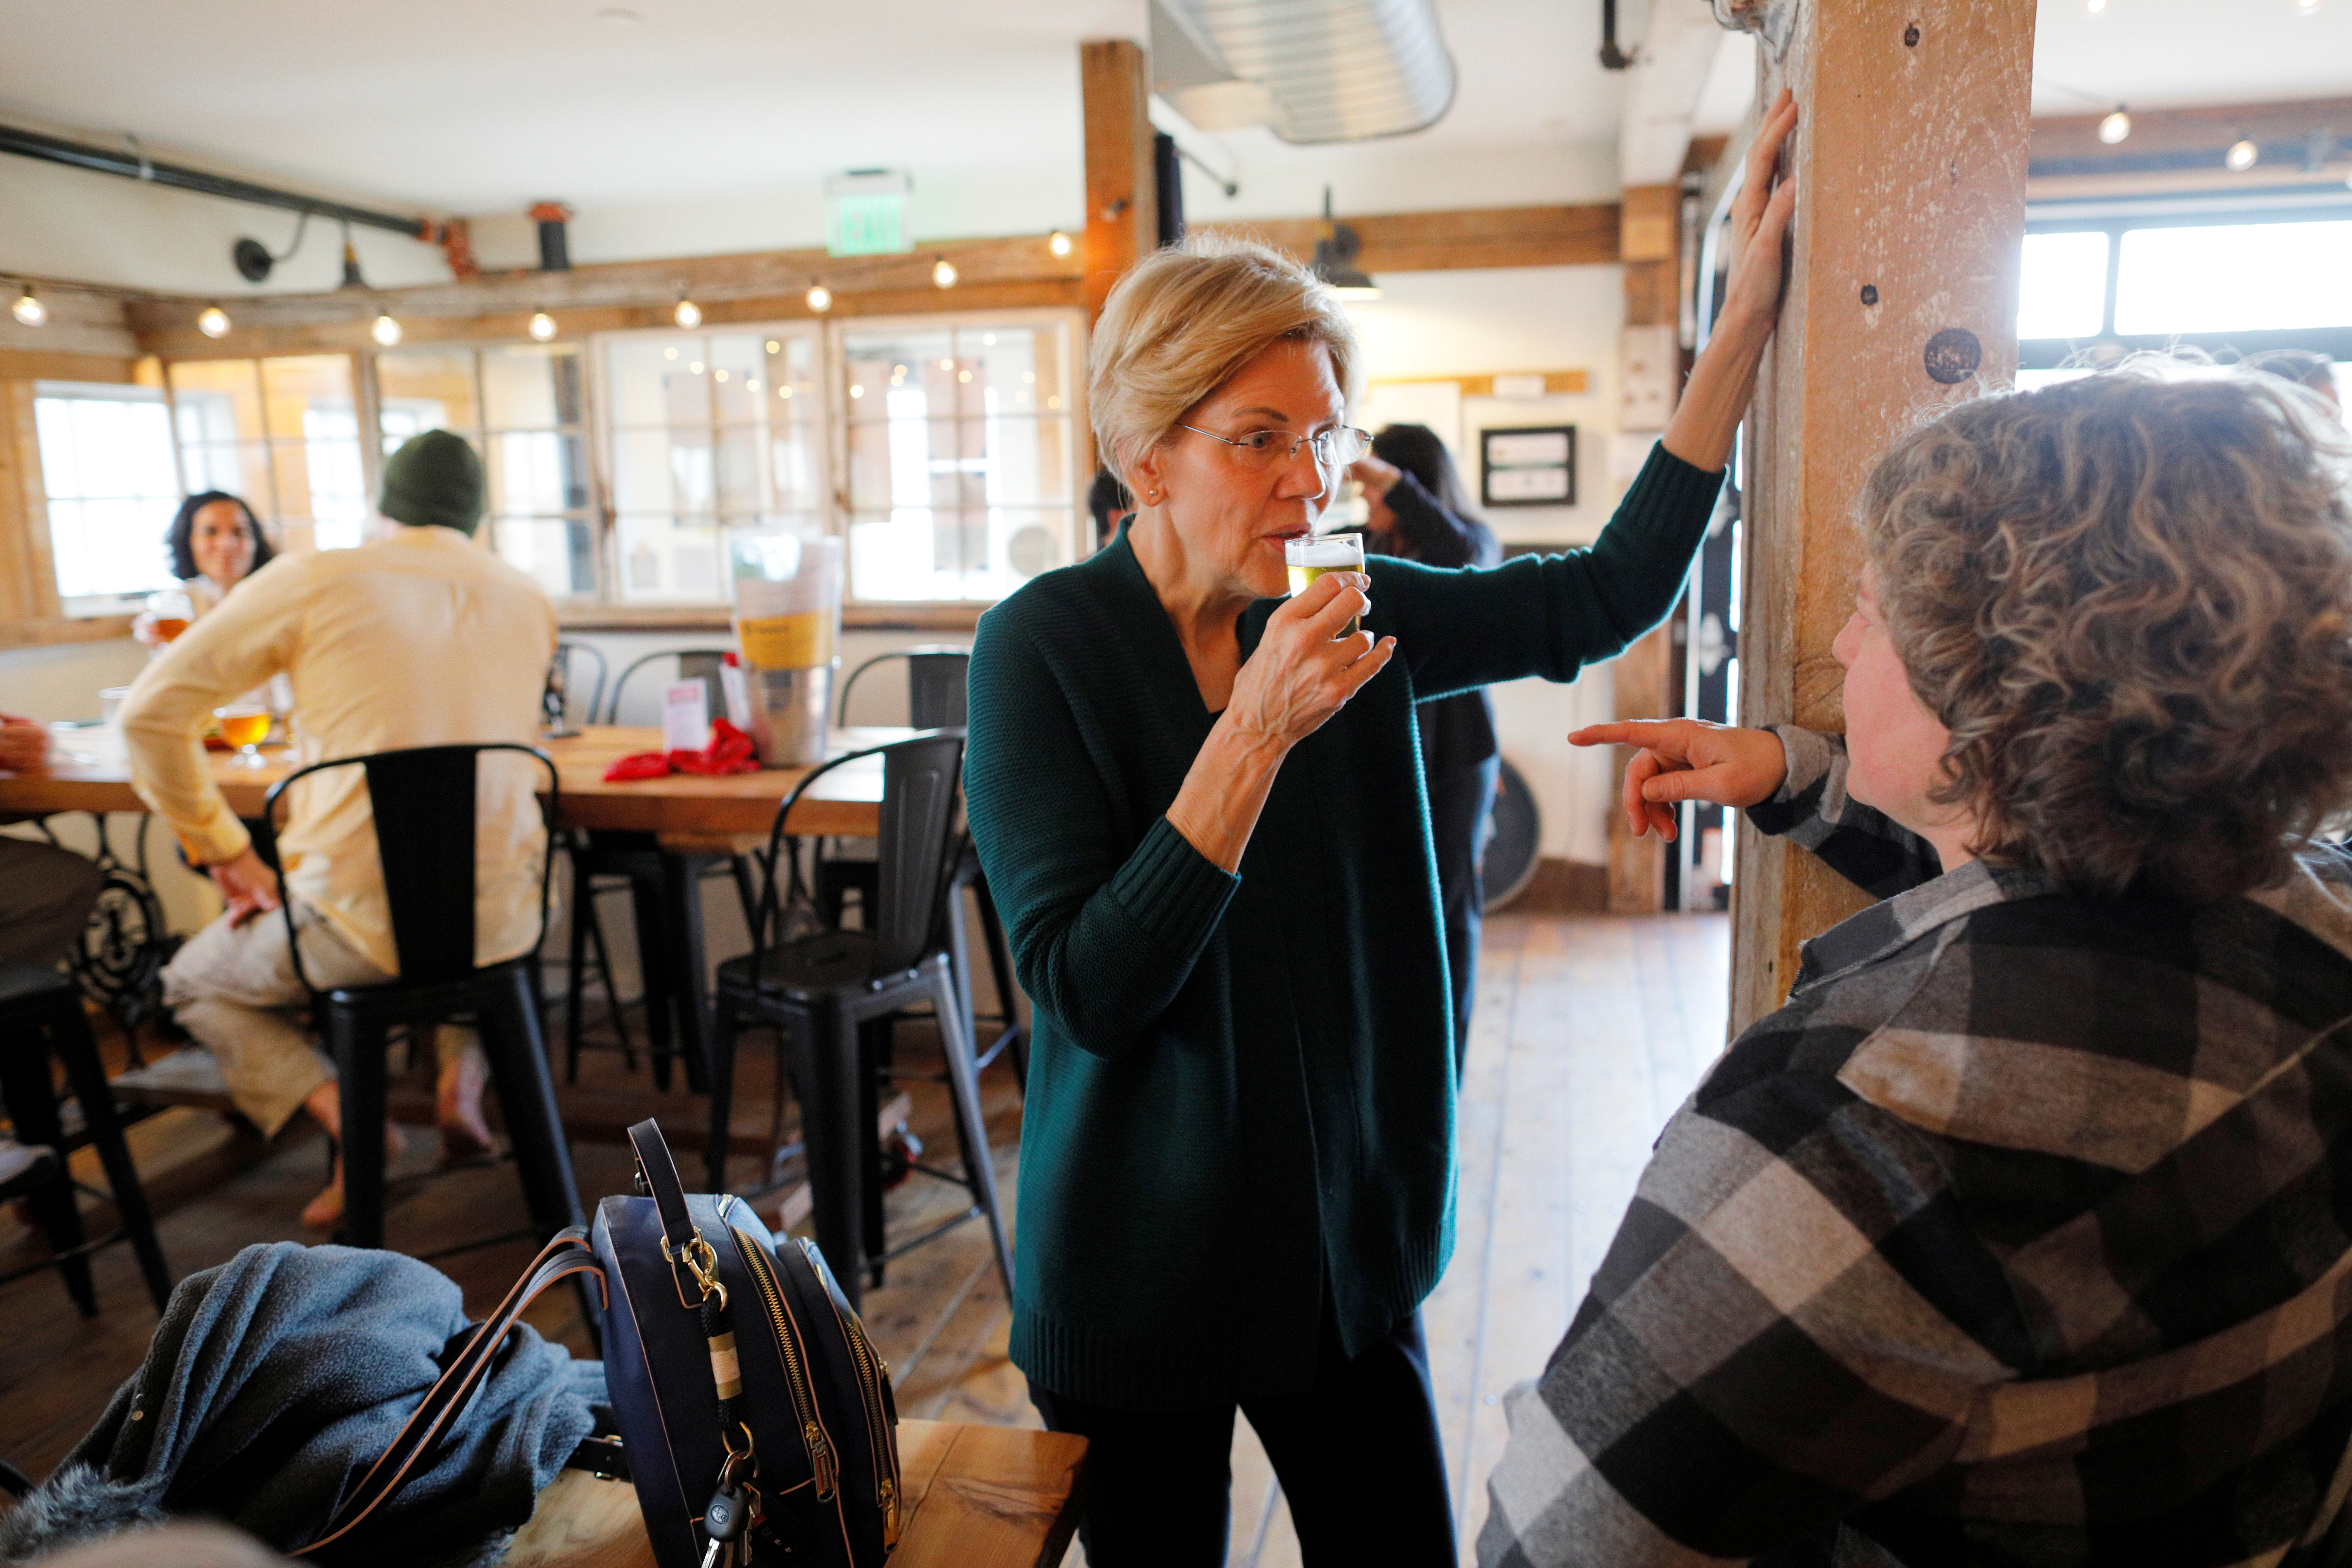 Democratic 2020 U.S. presidential candidate Warren samples a beer in North Hampton